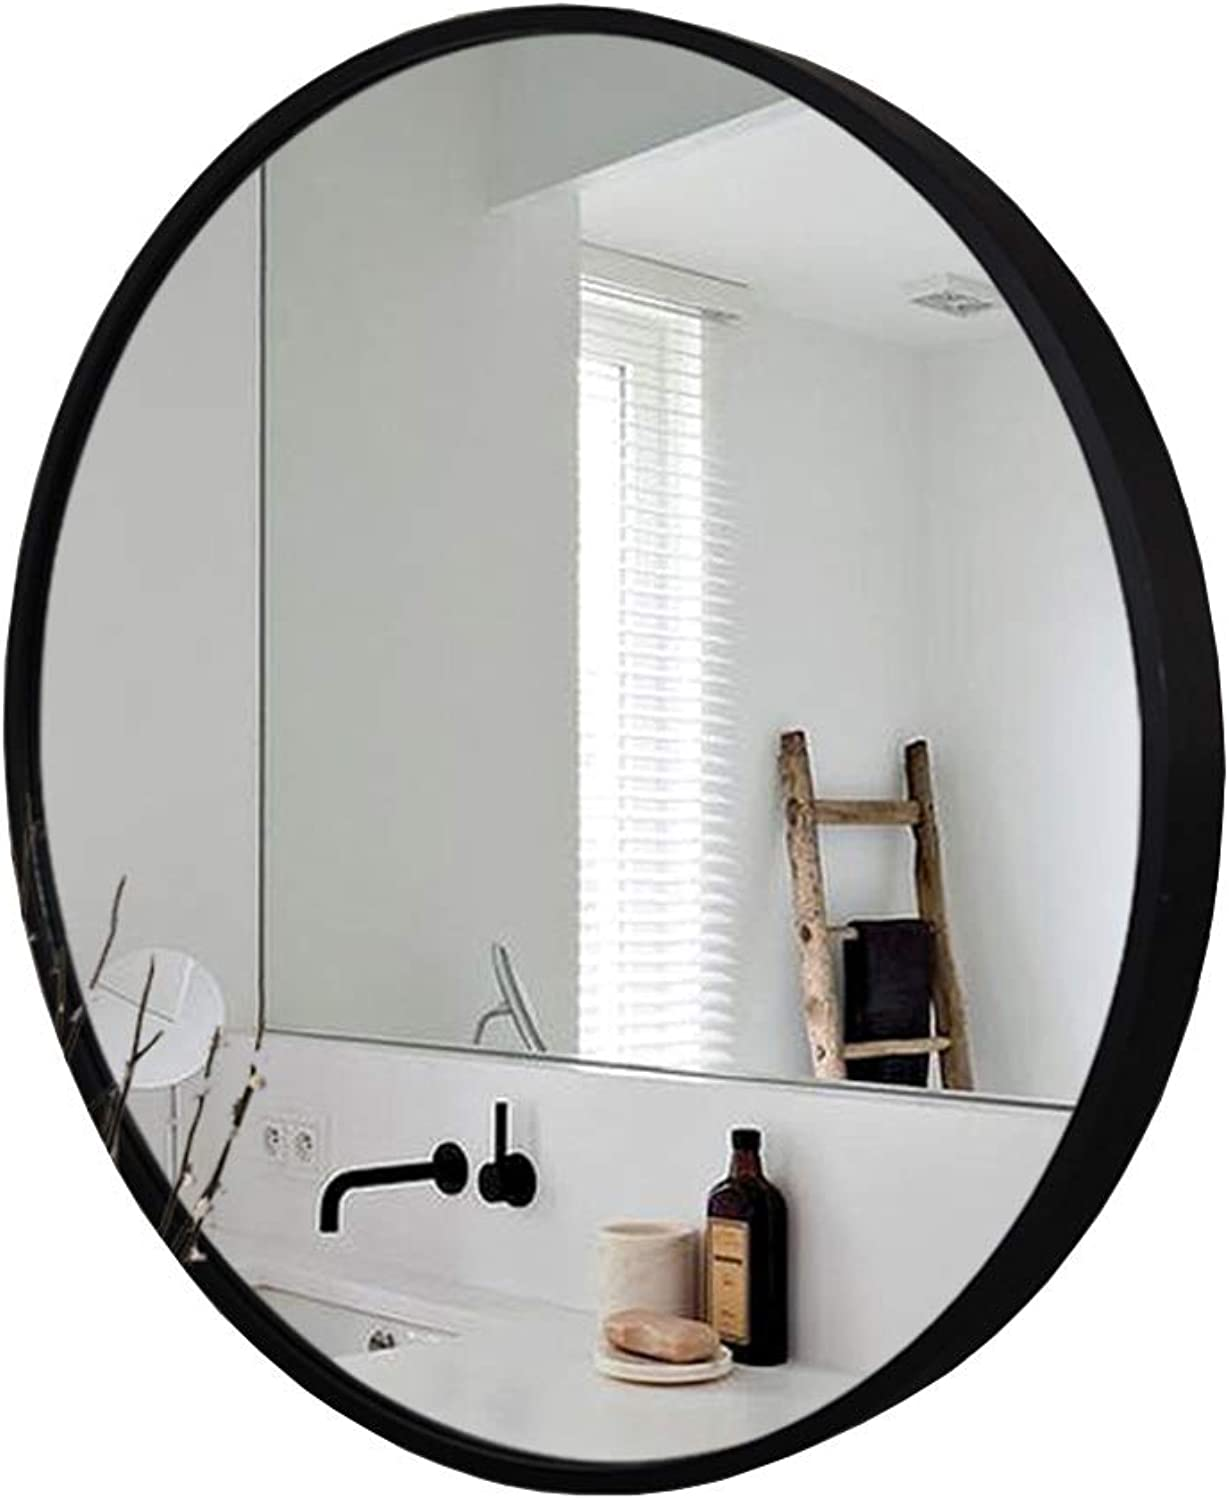 Modern Bathroom Metal Framed Mirror, Round Wall Accent Mirror,Decorative Mirror for Entryways, Washrooms, Living Rooms and More, Black